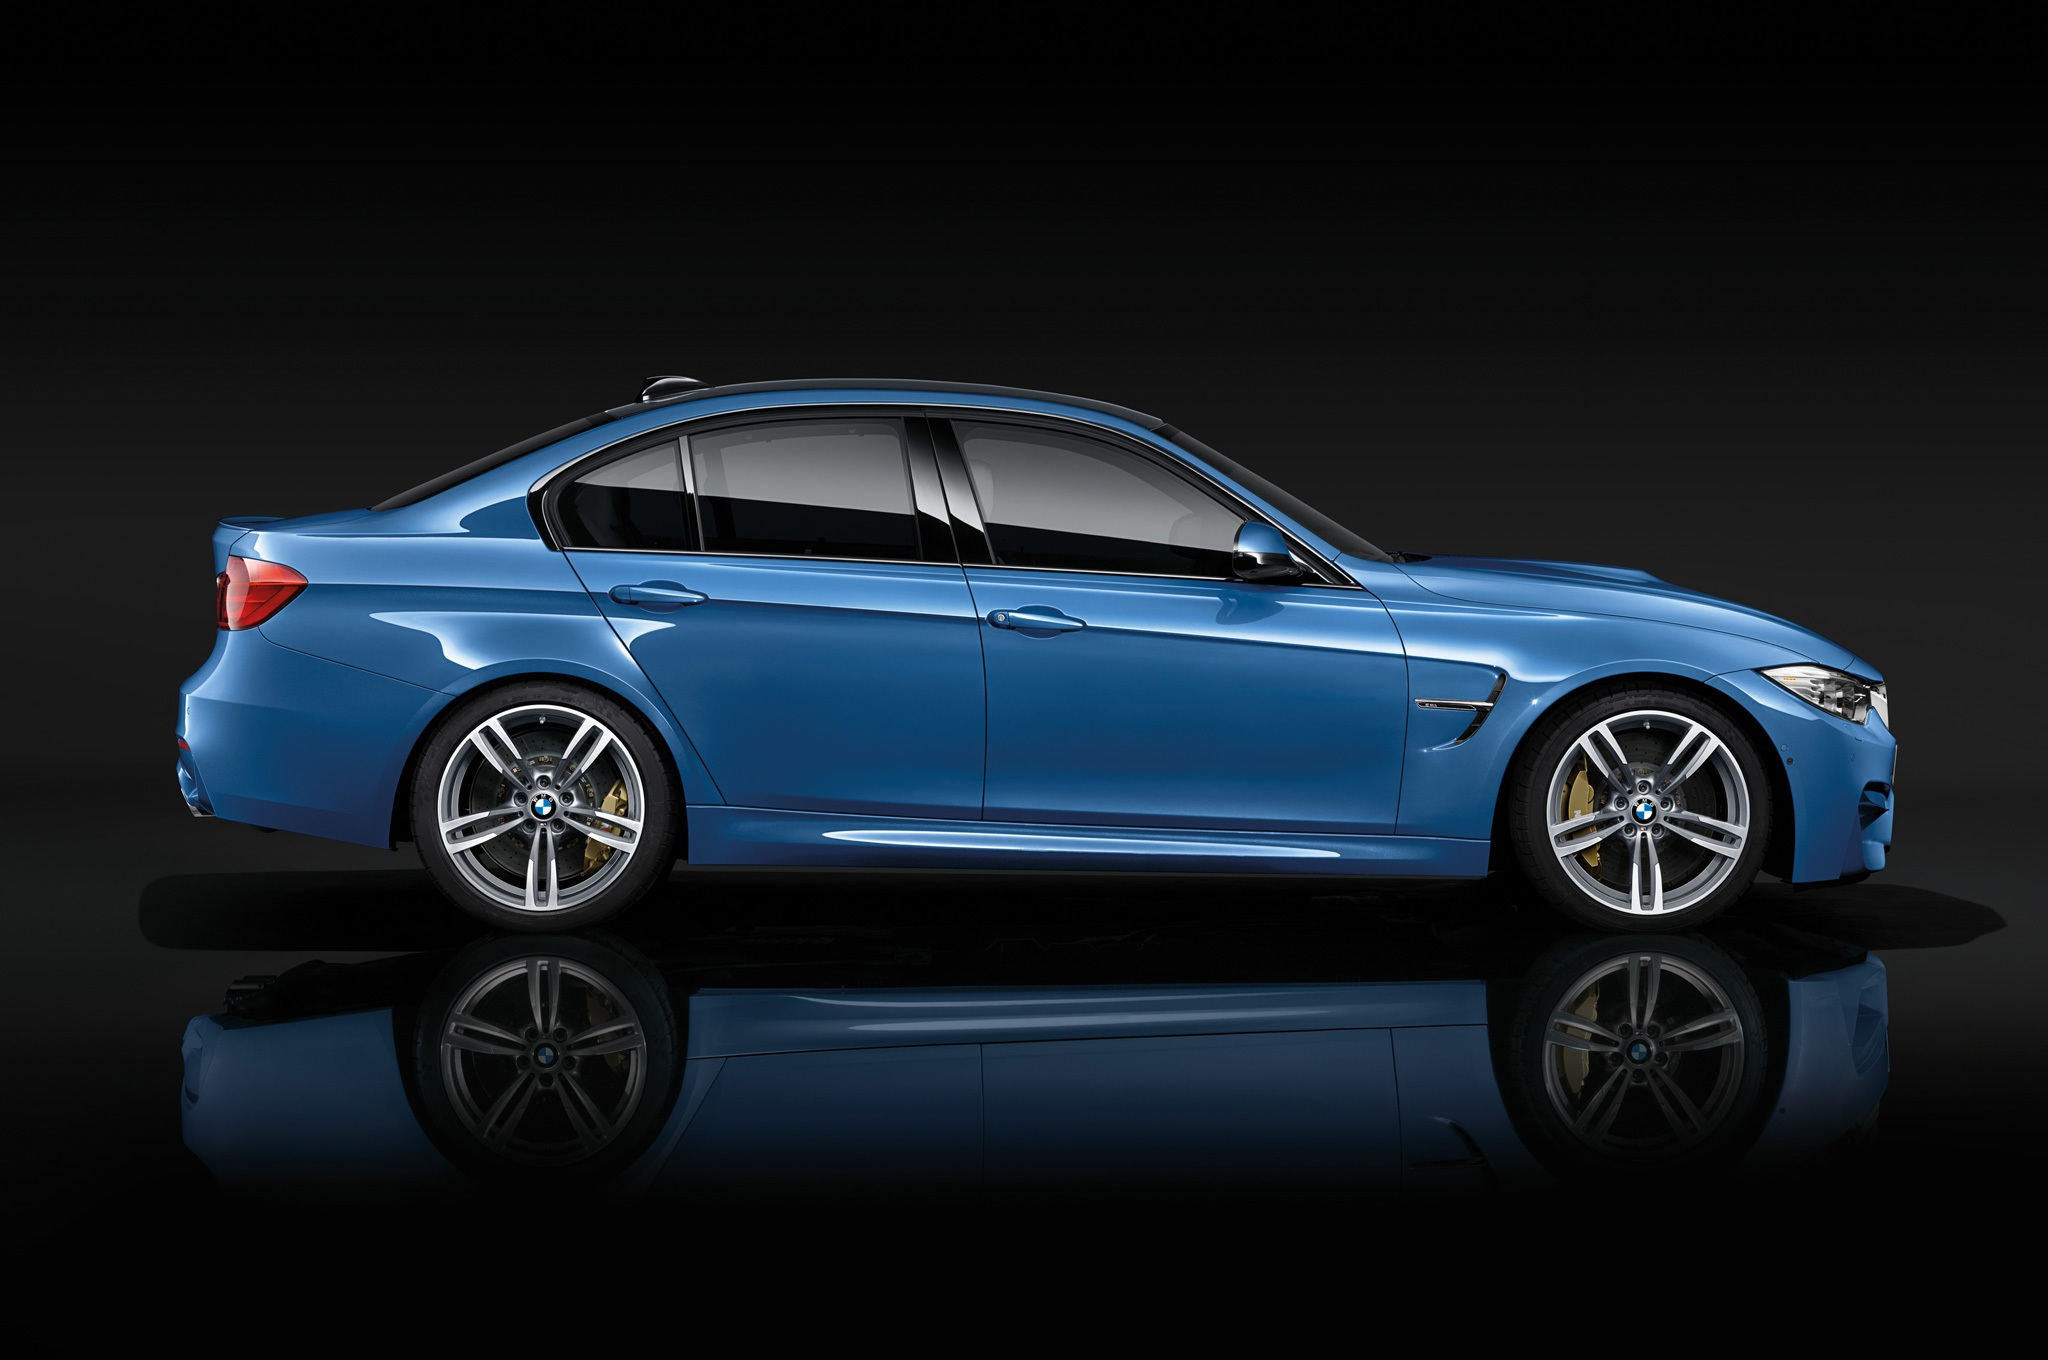 2015 Bmw M3 Cars Exclusive Videos And Photos Updates